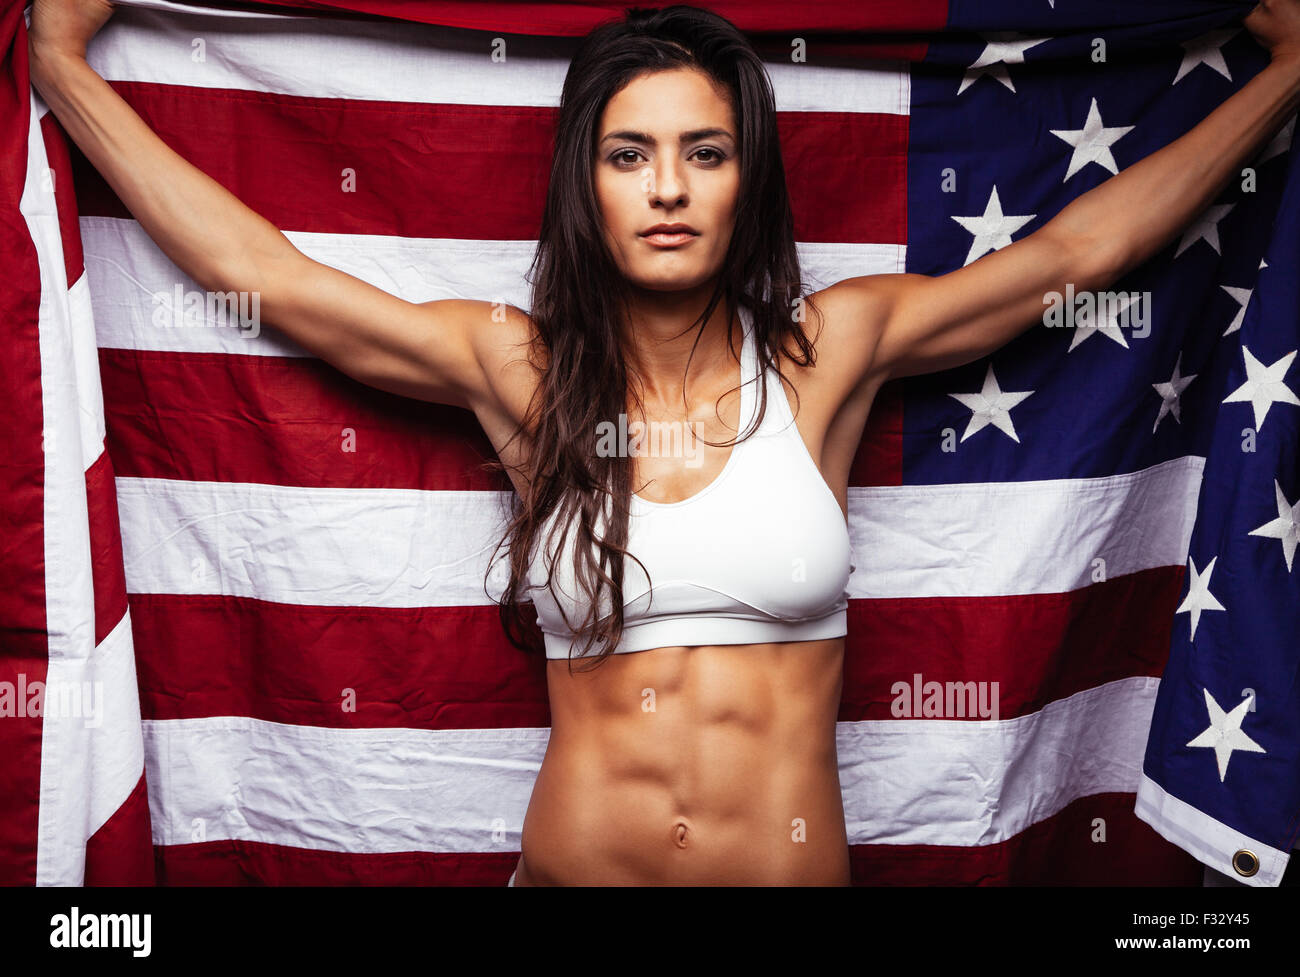 Portrait of proud female athlete holding American Flag against. Muscular young woman looking confidently at camera. - Stock Image